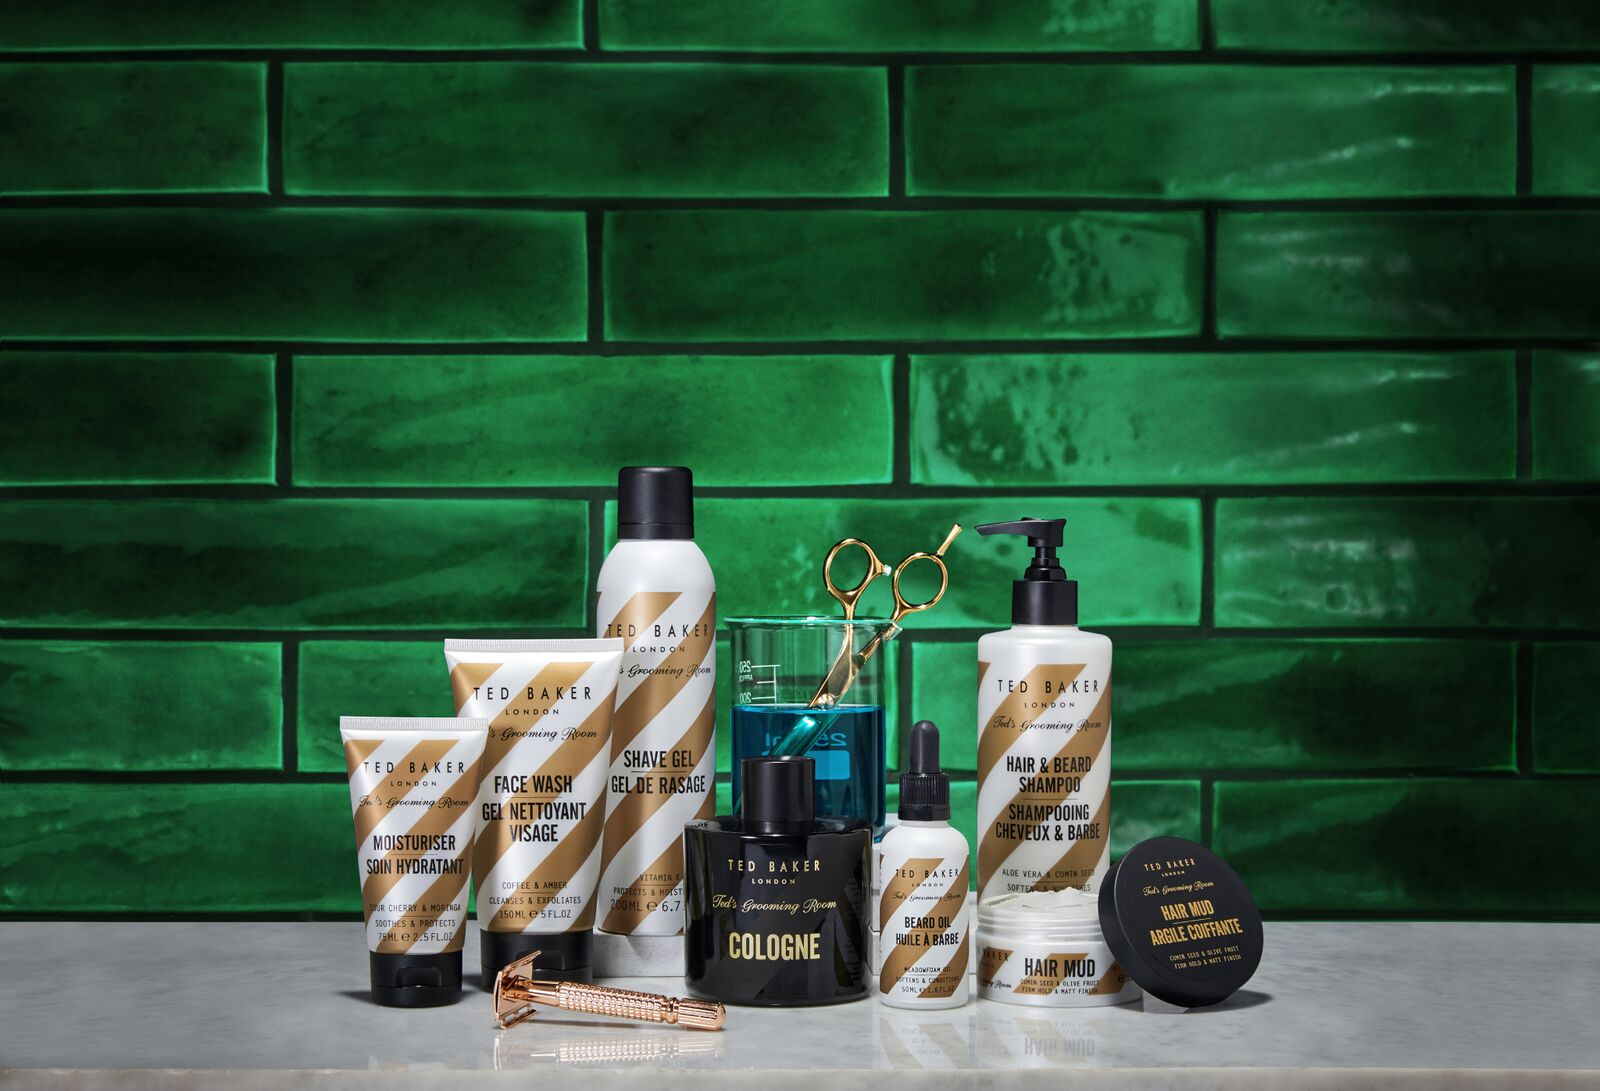 Grooming Products For The Spring Based On Scent